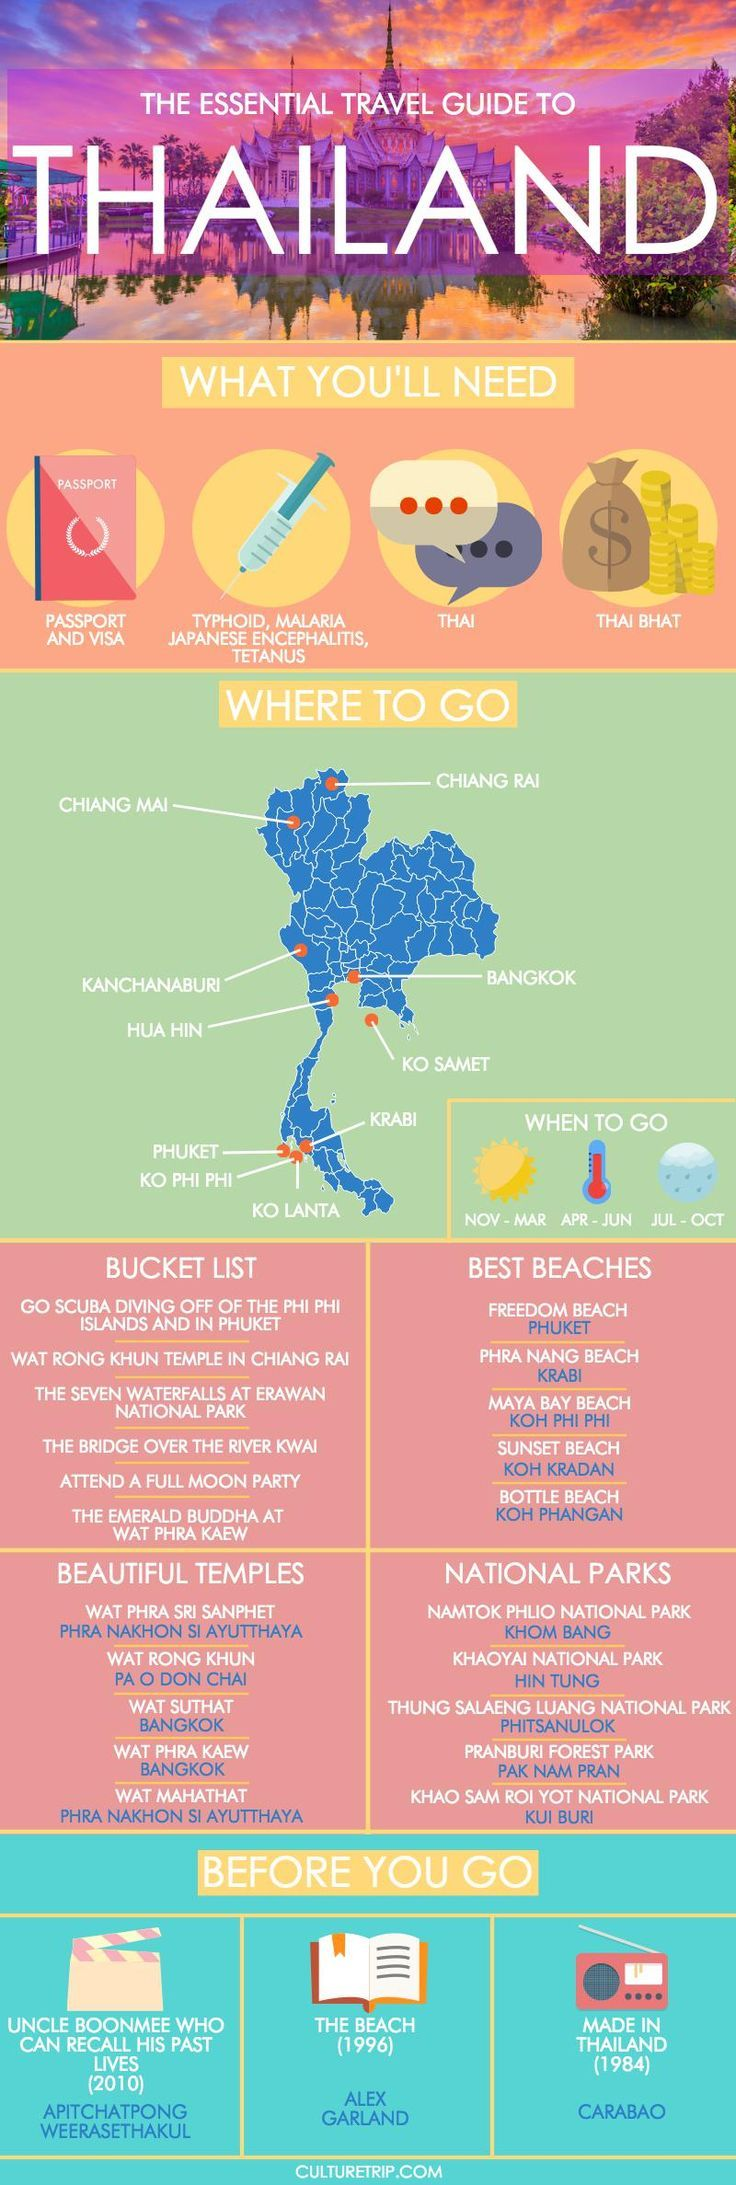 Your Essential Travel Guide to Thailand (Infographic)